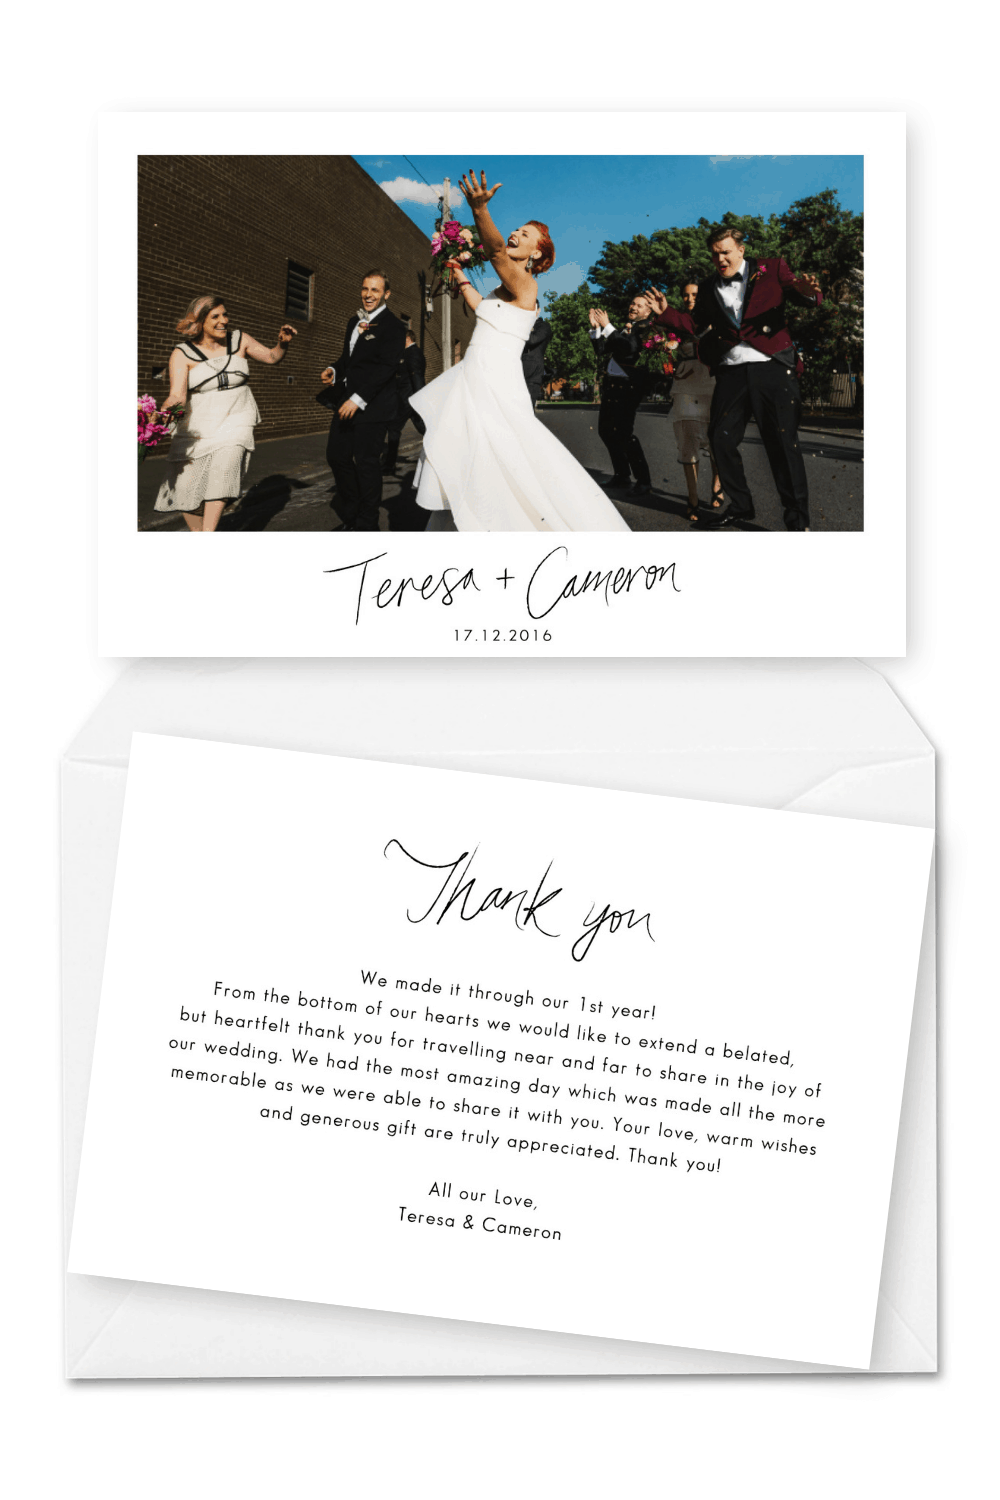 Personalised With Photo Thank Guests For Attending Wedding Thank You Cards Greeting Cards Ecog Stationery Office Supplies